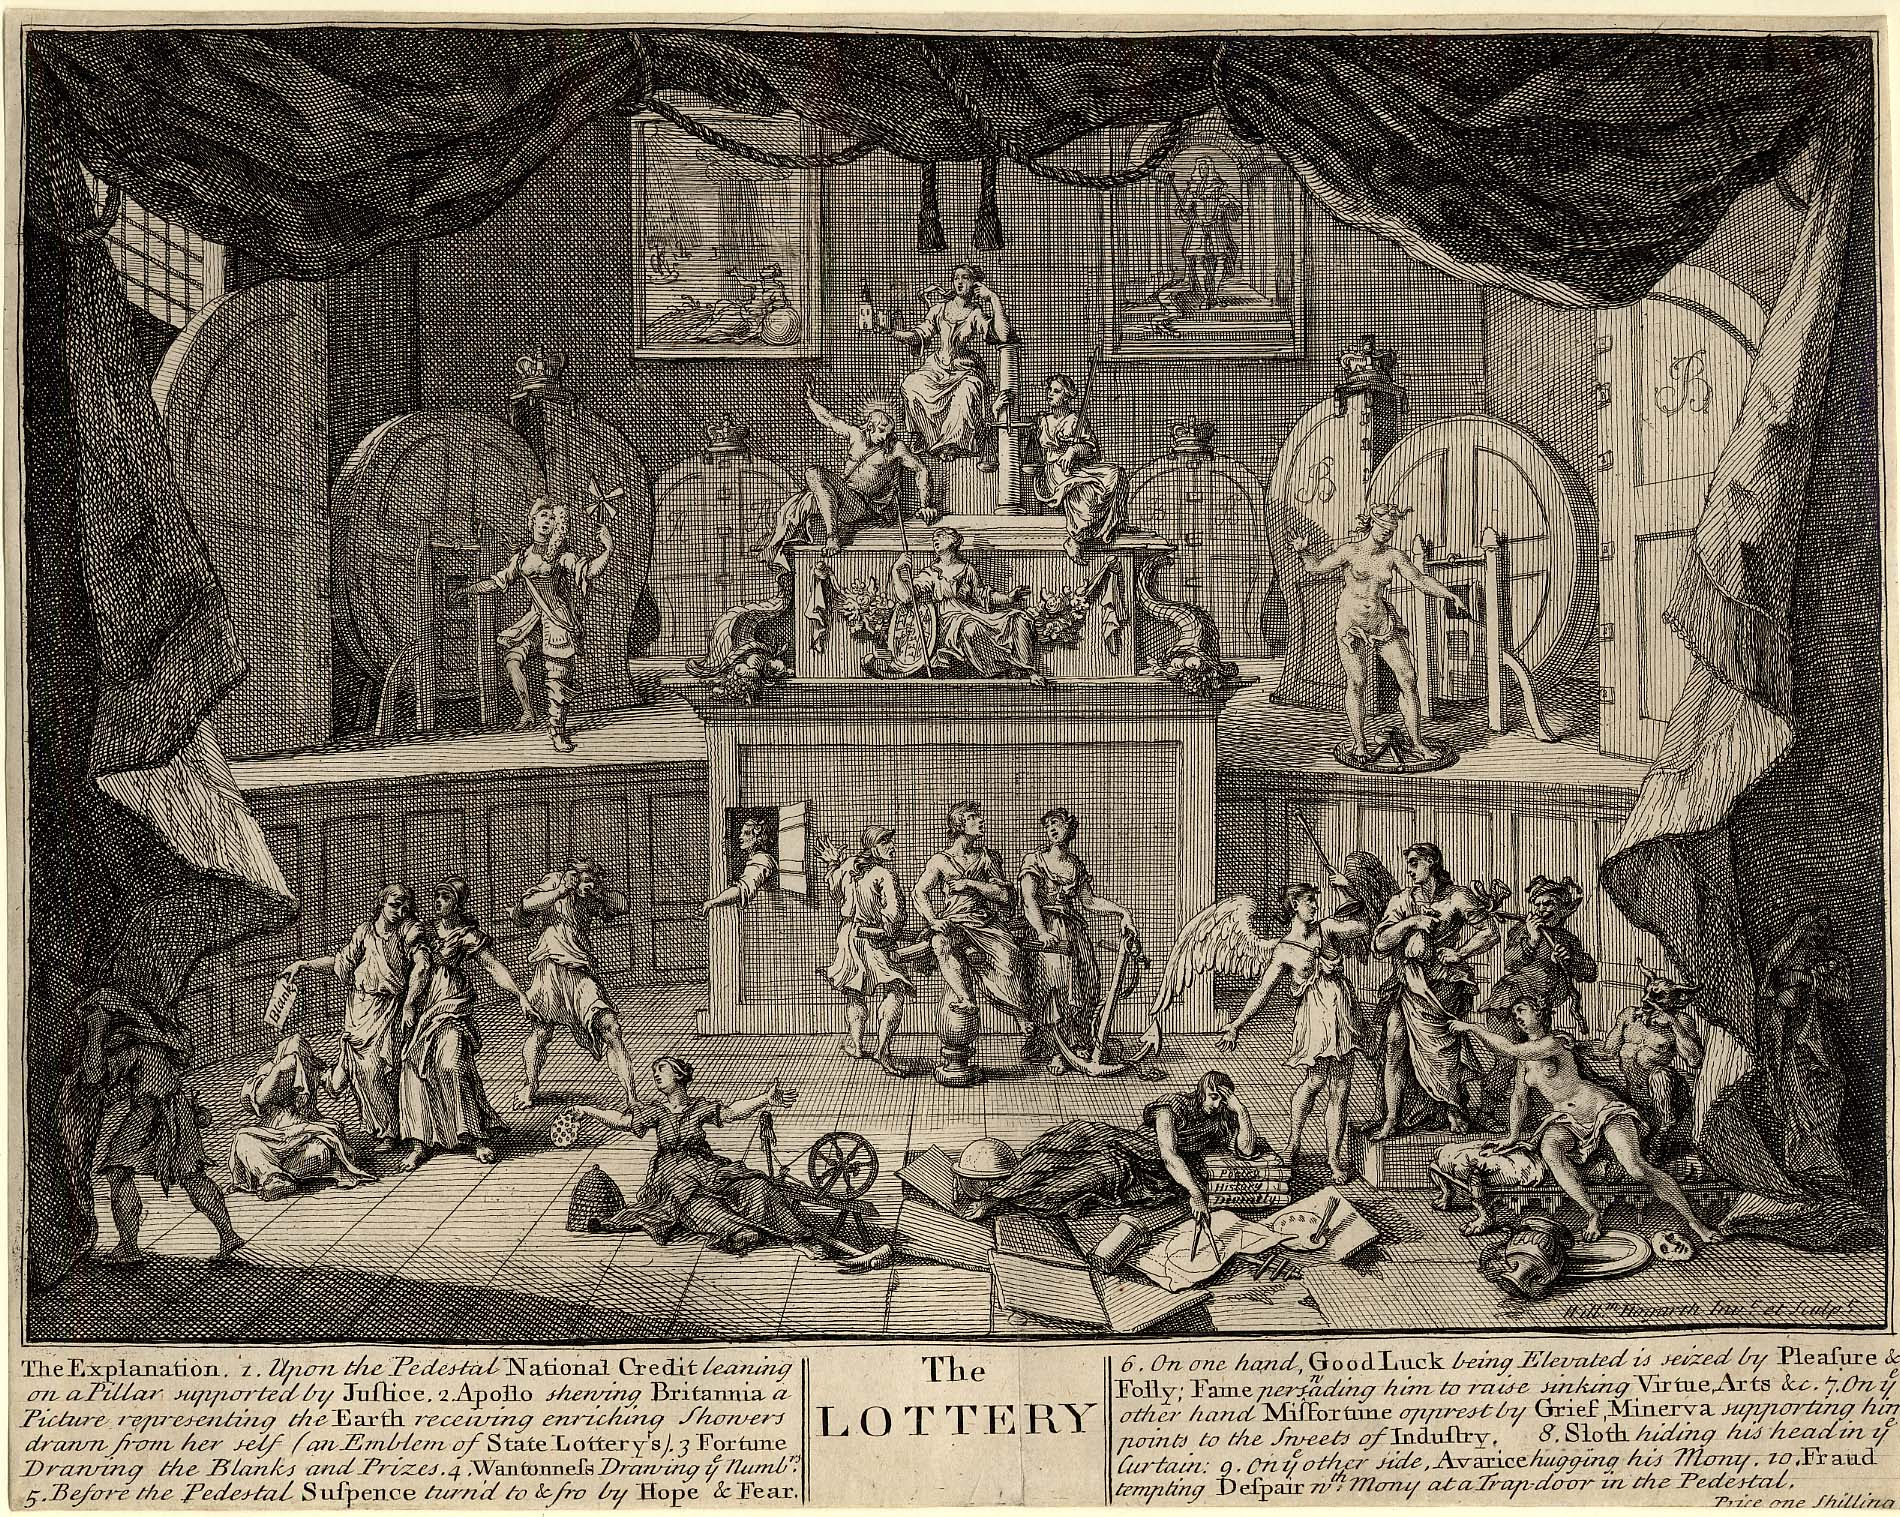 The Lottery, by William Hogarth